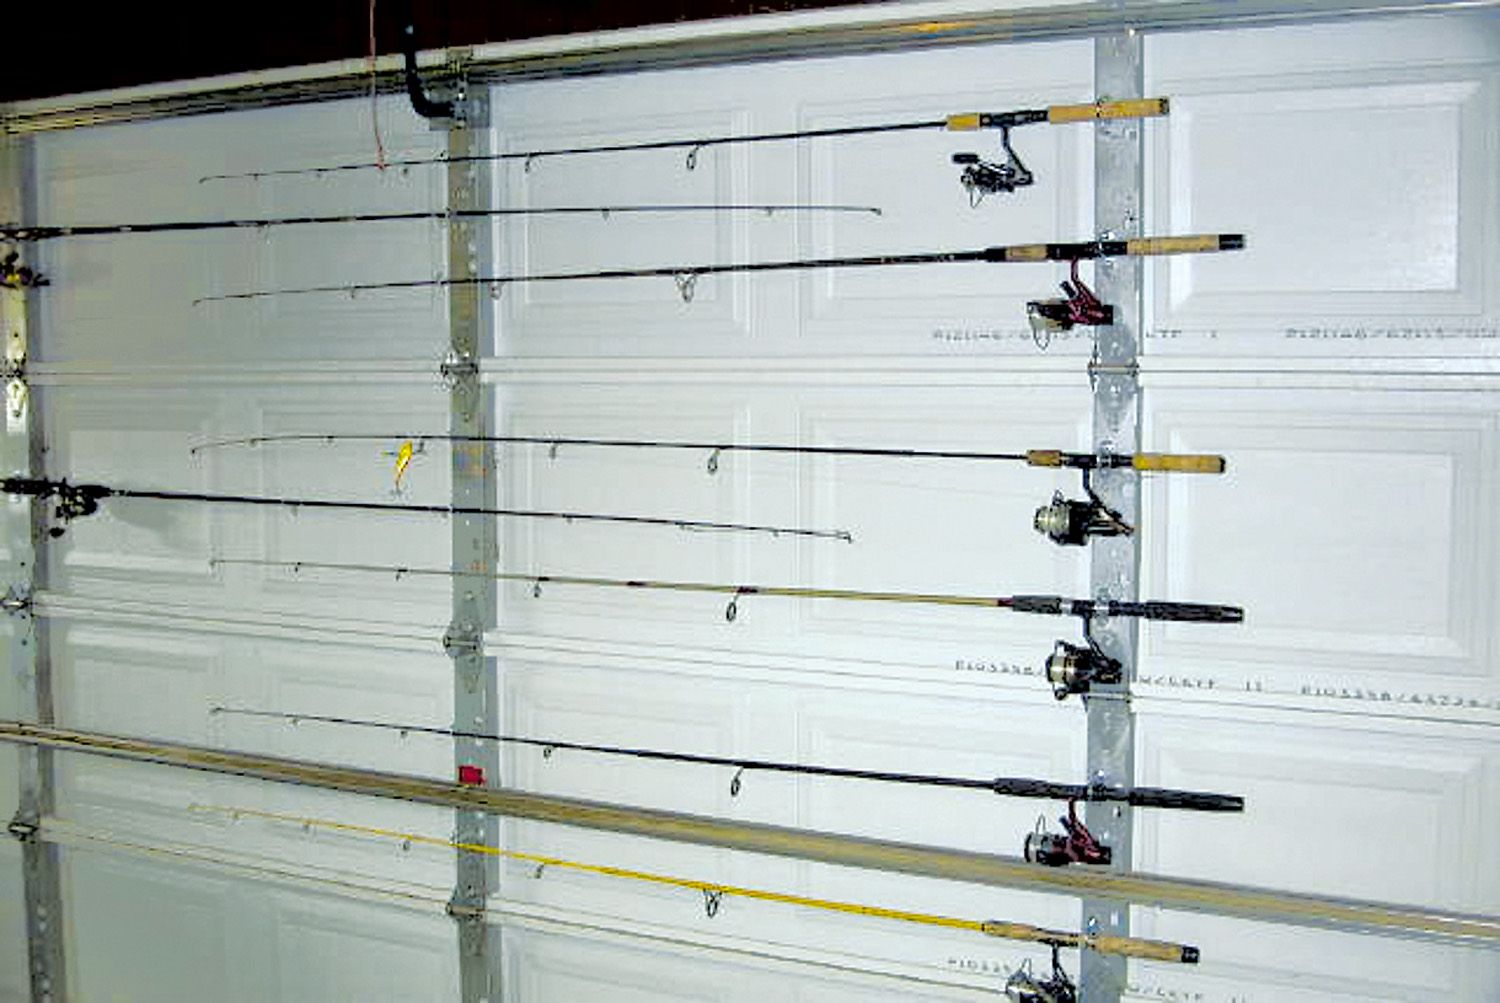 Fishing rod storage on garage door uses u bolts to hold for Fishing rod organizer